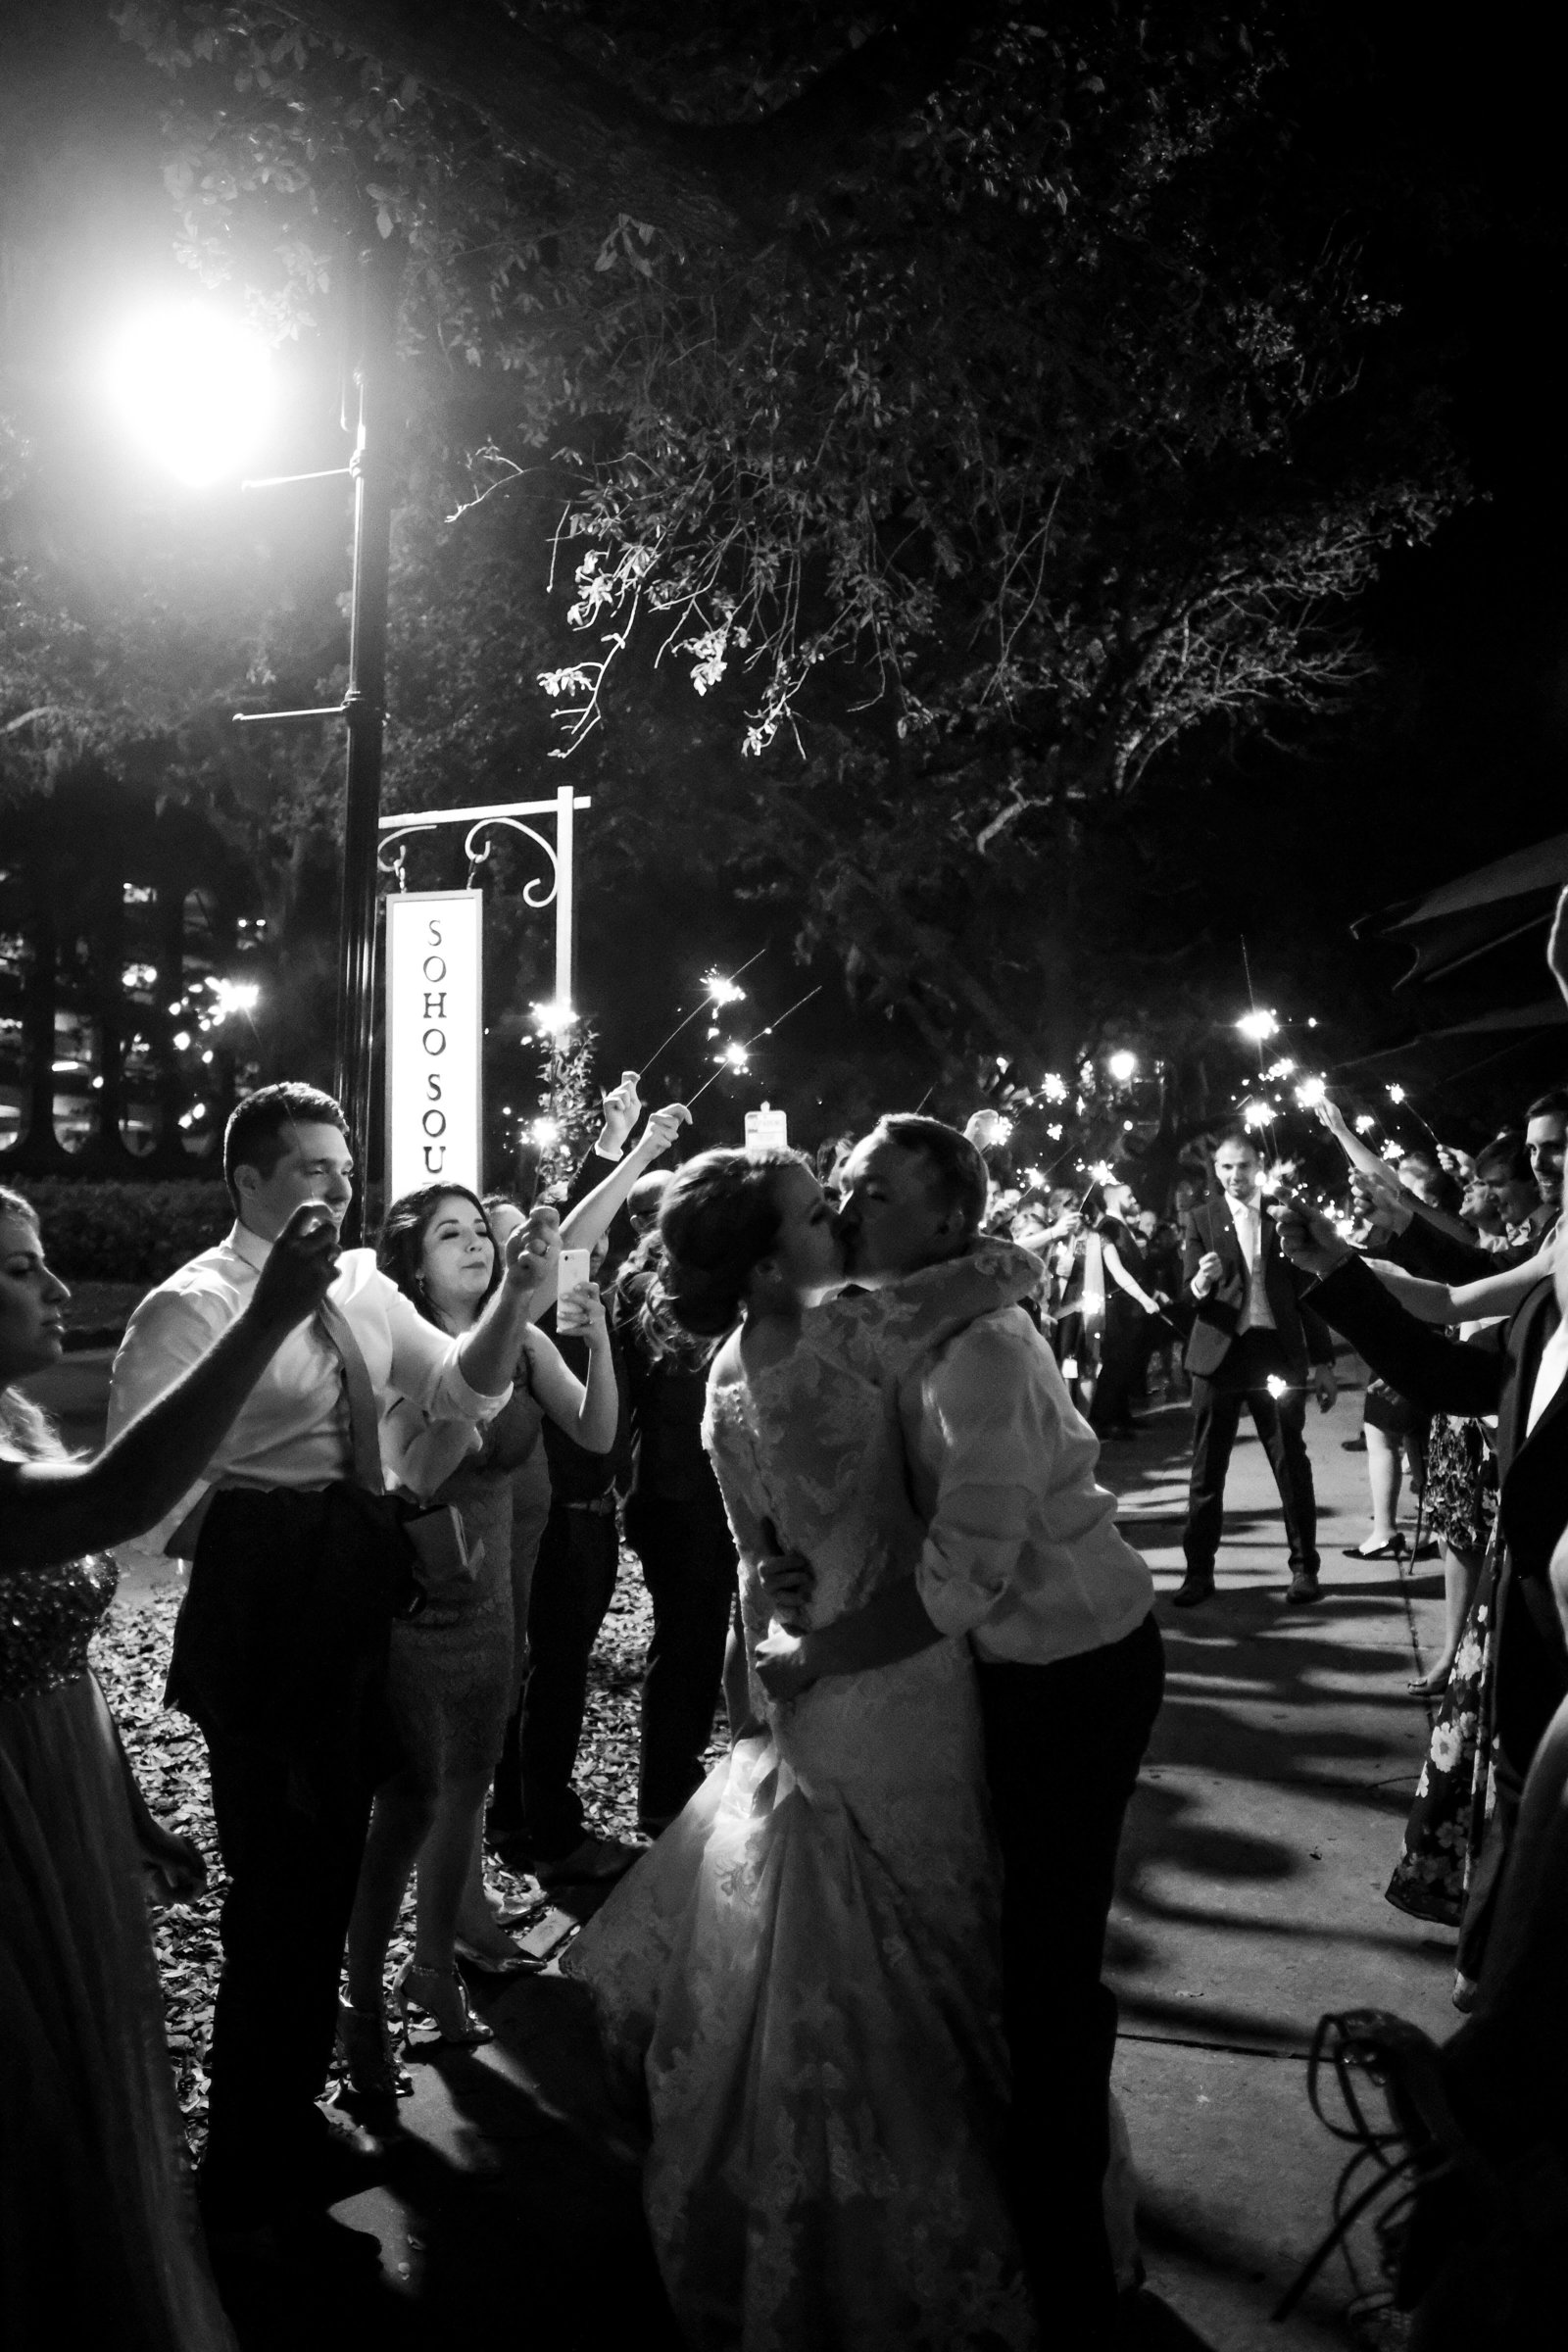 Soho South Cafe Wedding, Thos + Kathleen, Bobbi Brinkman Photography